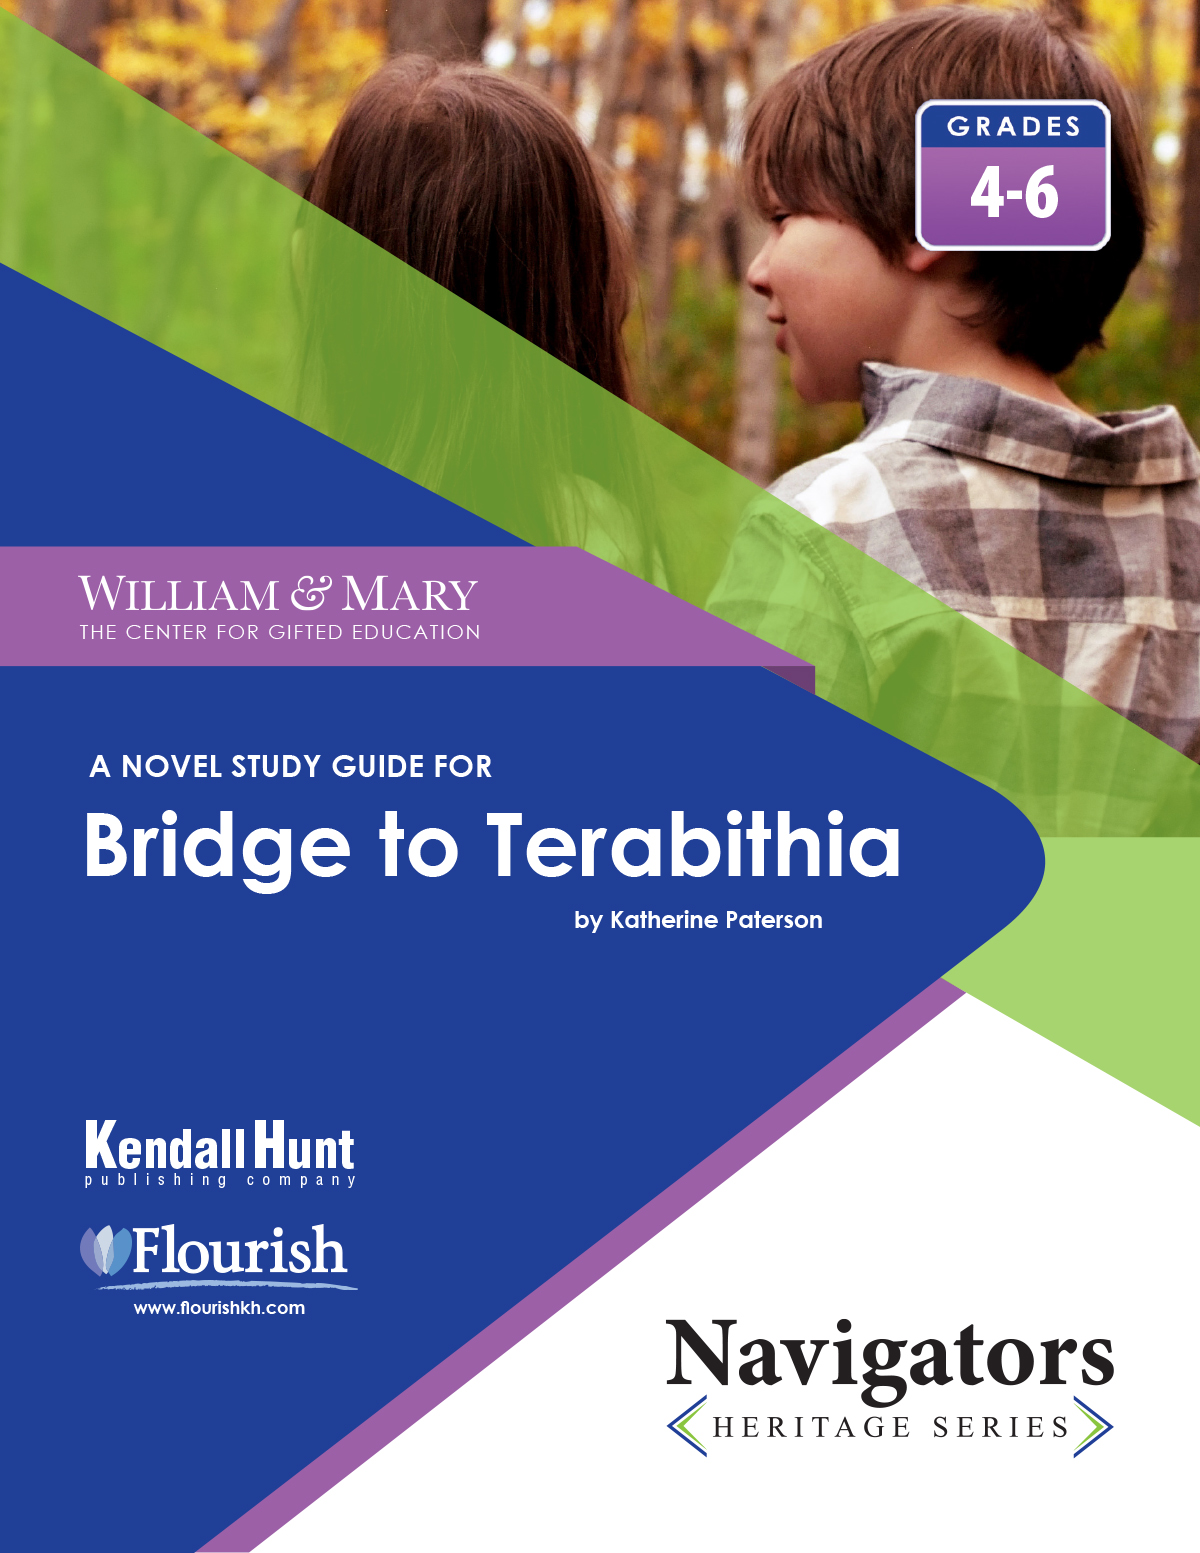 William & Mary Navigator Bridge to Terabithia